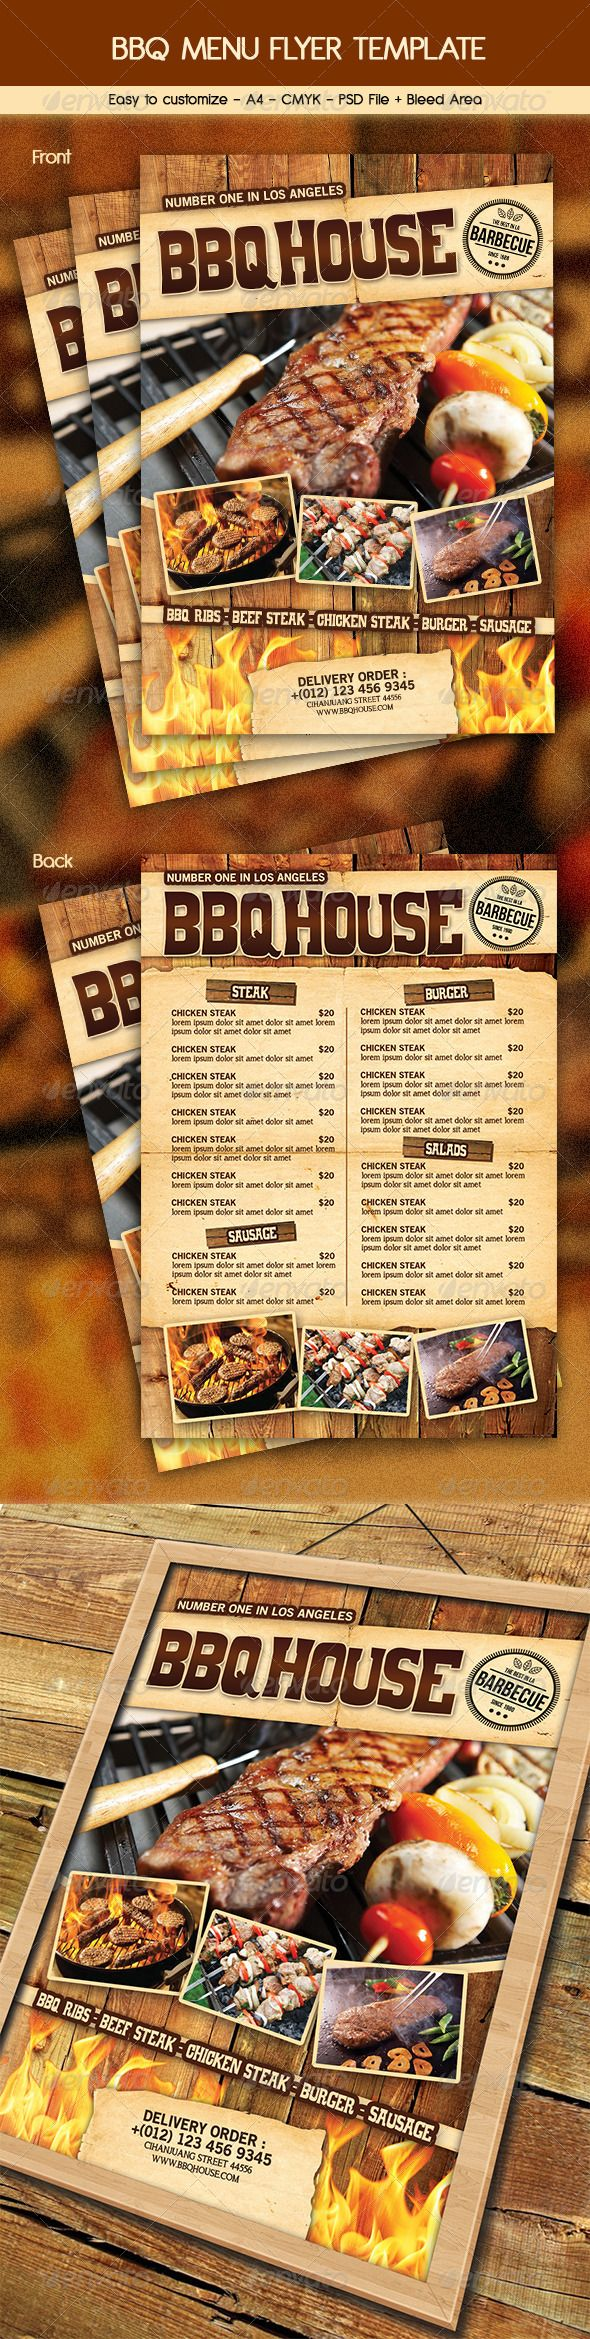 bbq steak menu flyer fast food menu flyer template and restaurant. Black Bedroom Furniture Sets. Home Design Ideas